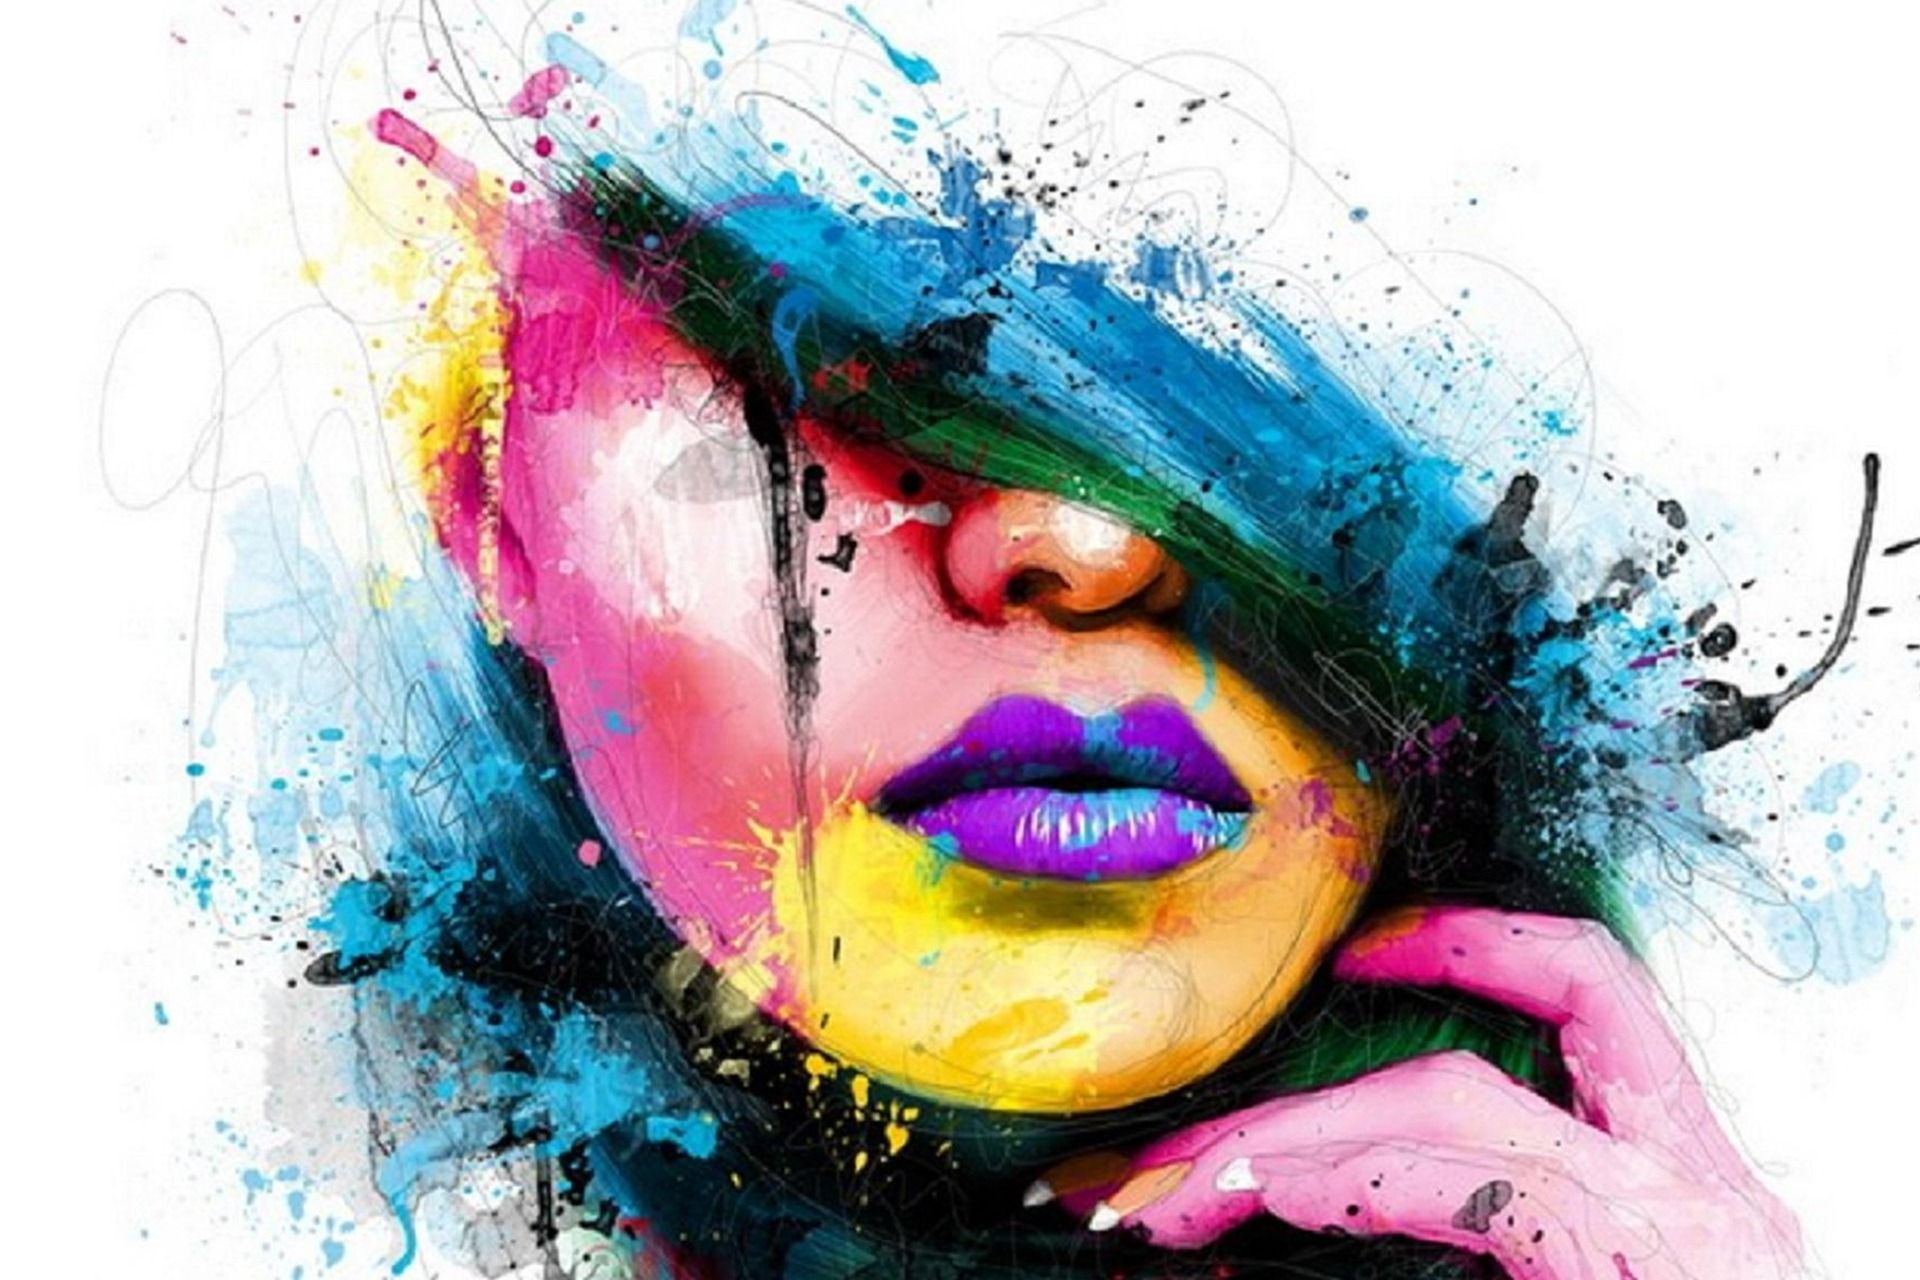 Abstract Colored Girl Hd Wallpaper Abstract Art